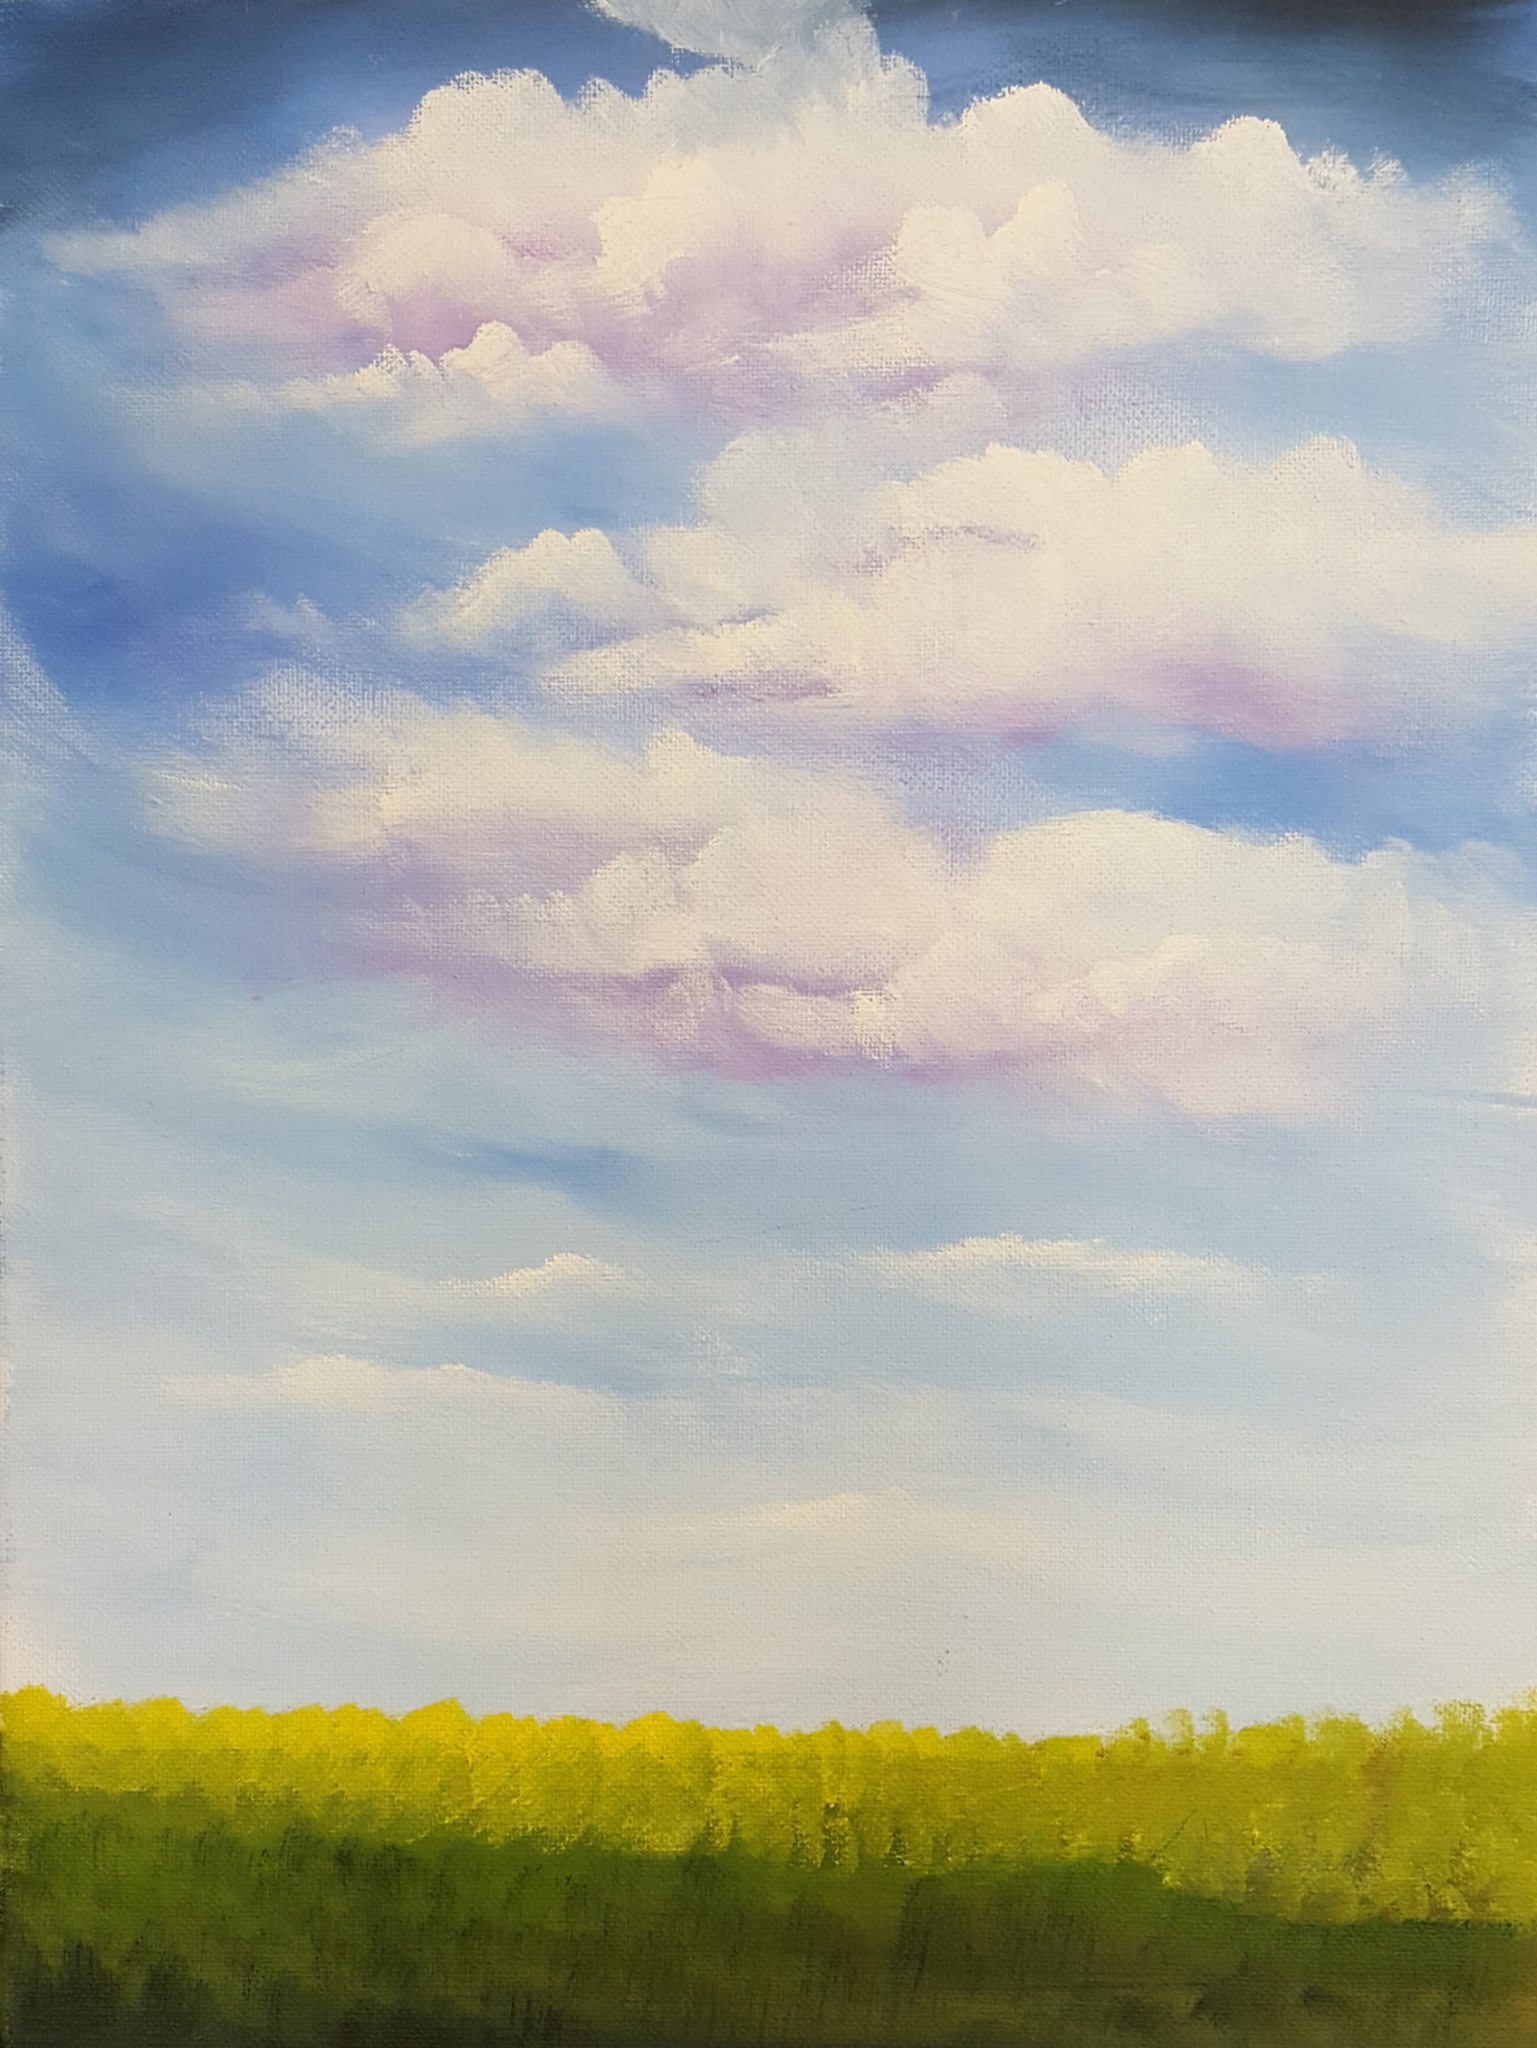 ART CLASS - CLOUD FILLED SKY IN ACRYLICS WITH JANET CARDINAL - MAY 14, 6-9PM